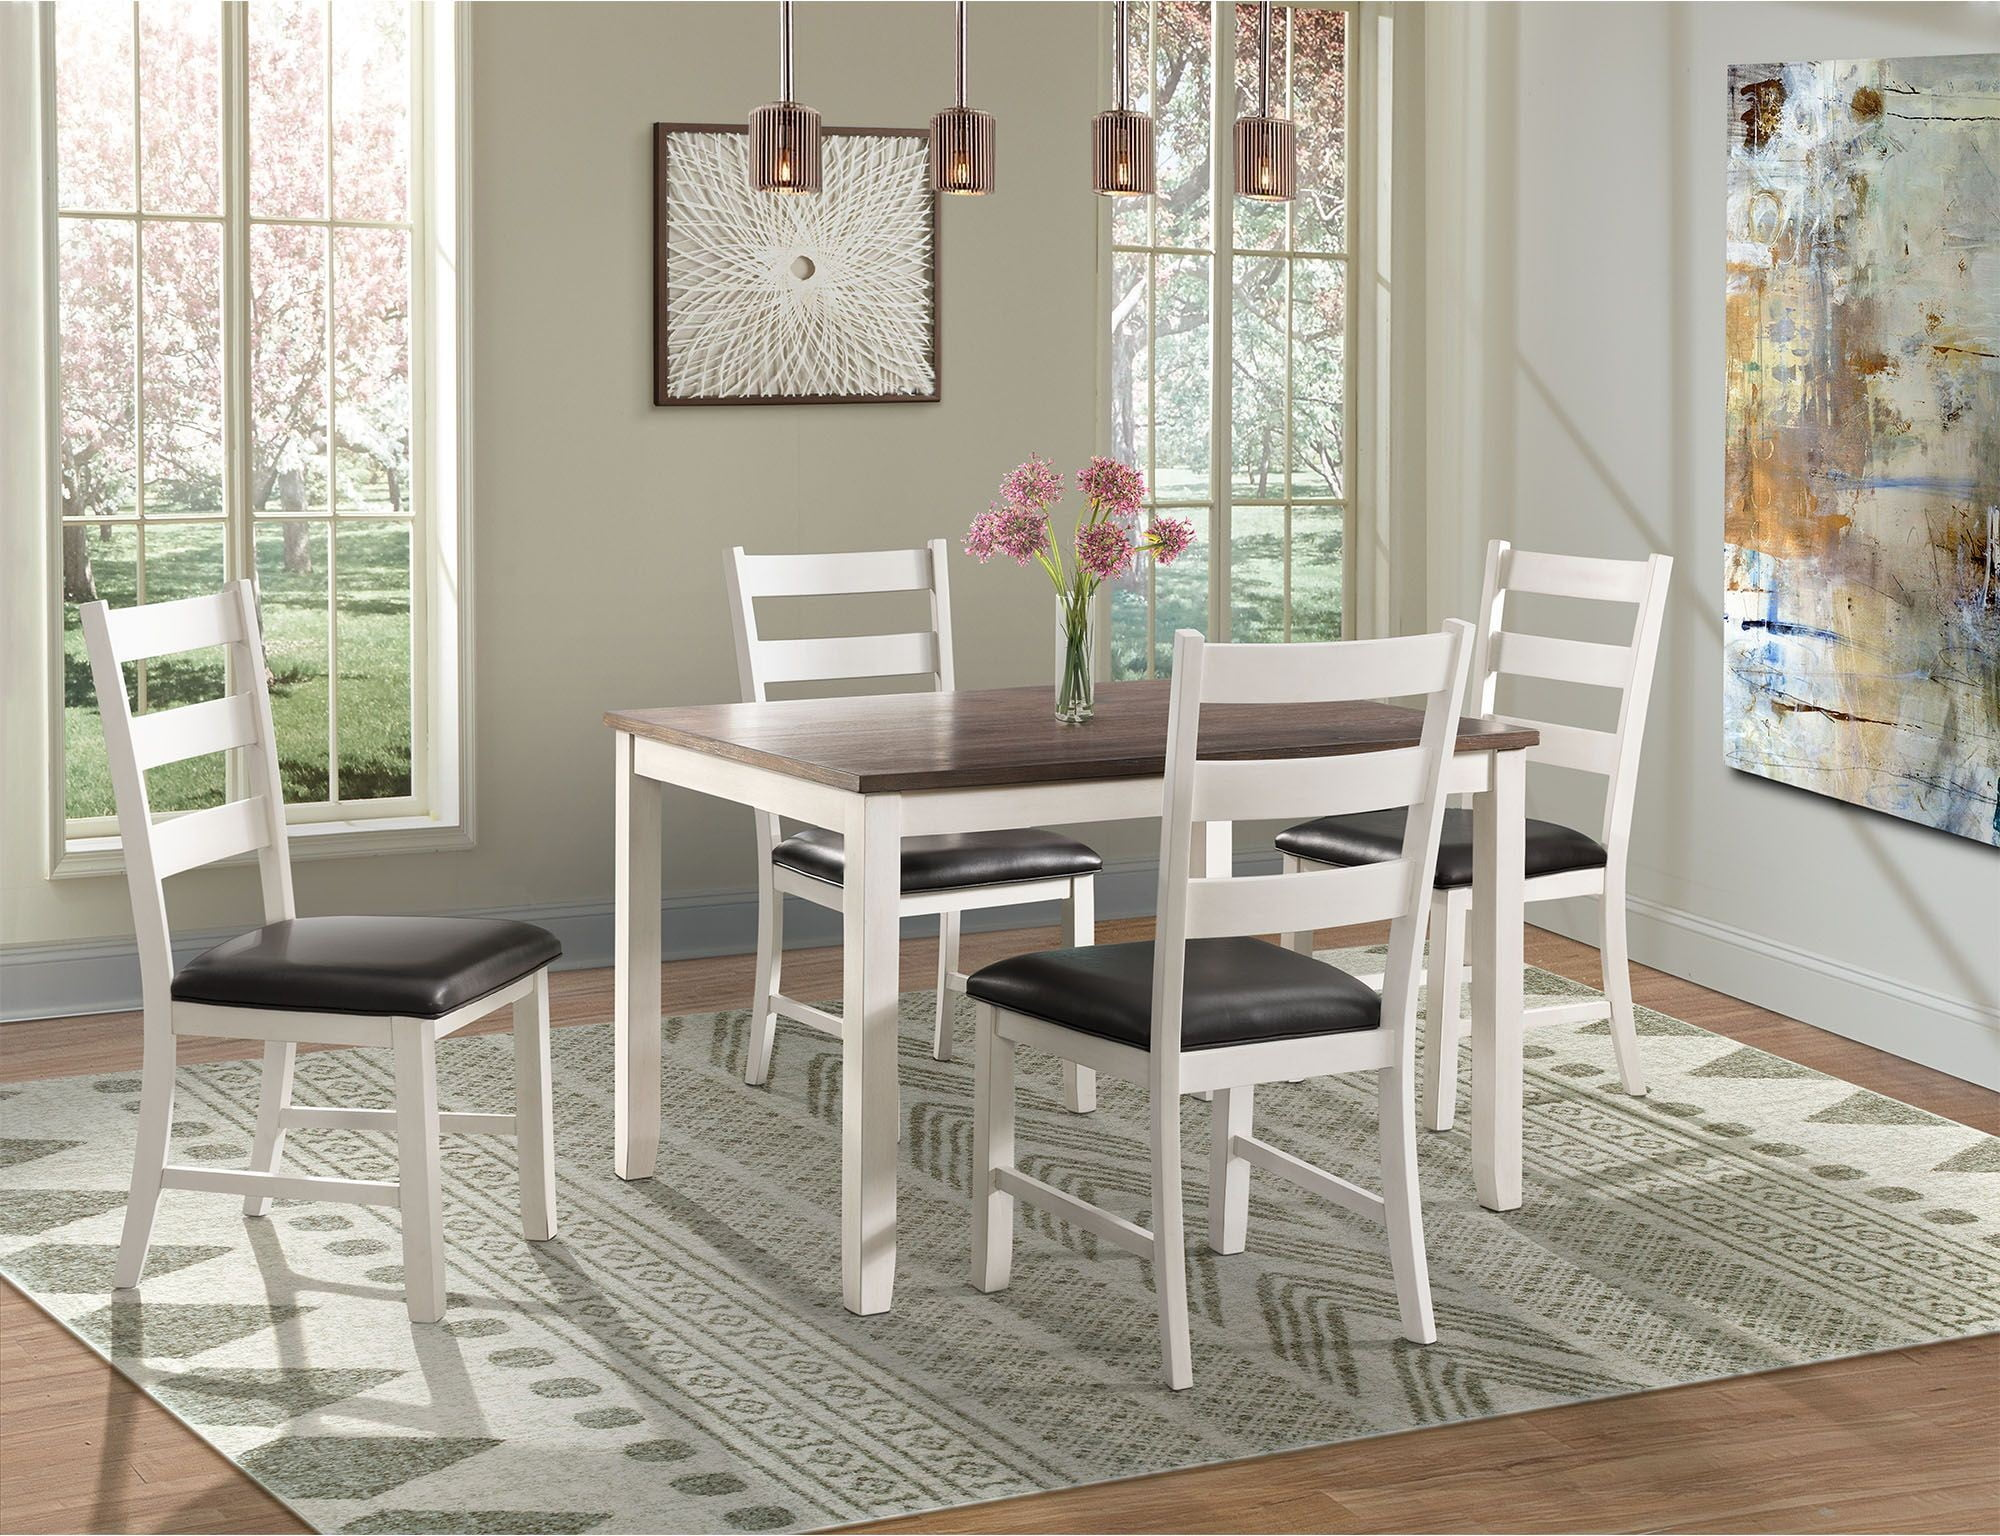 Kona Brown and White 5 Piece Dining Room Set from Elements ...